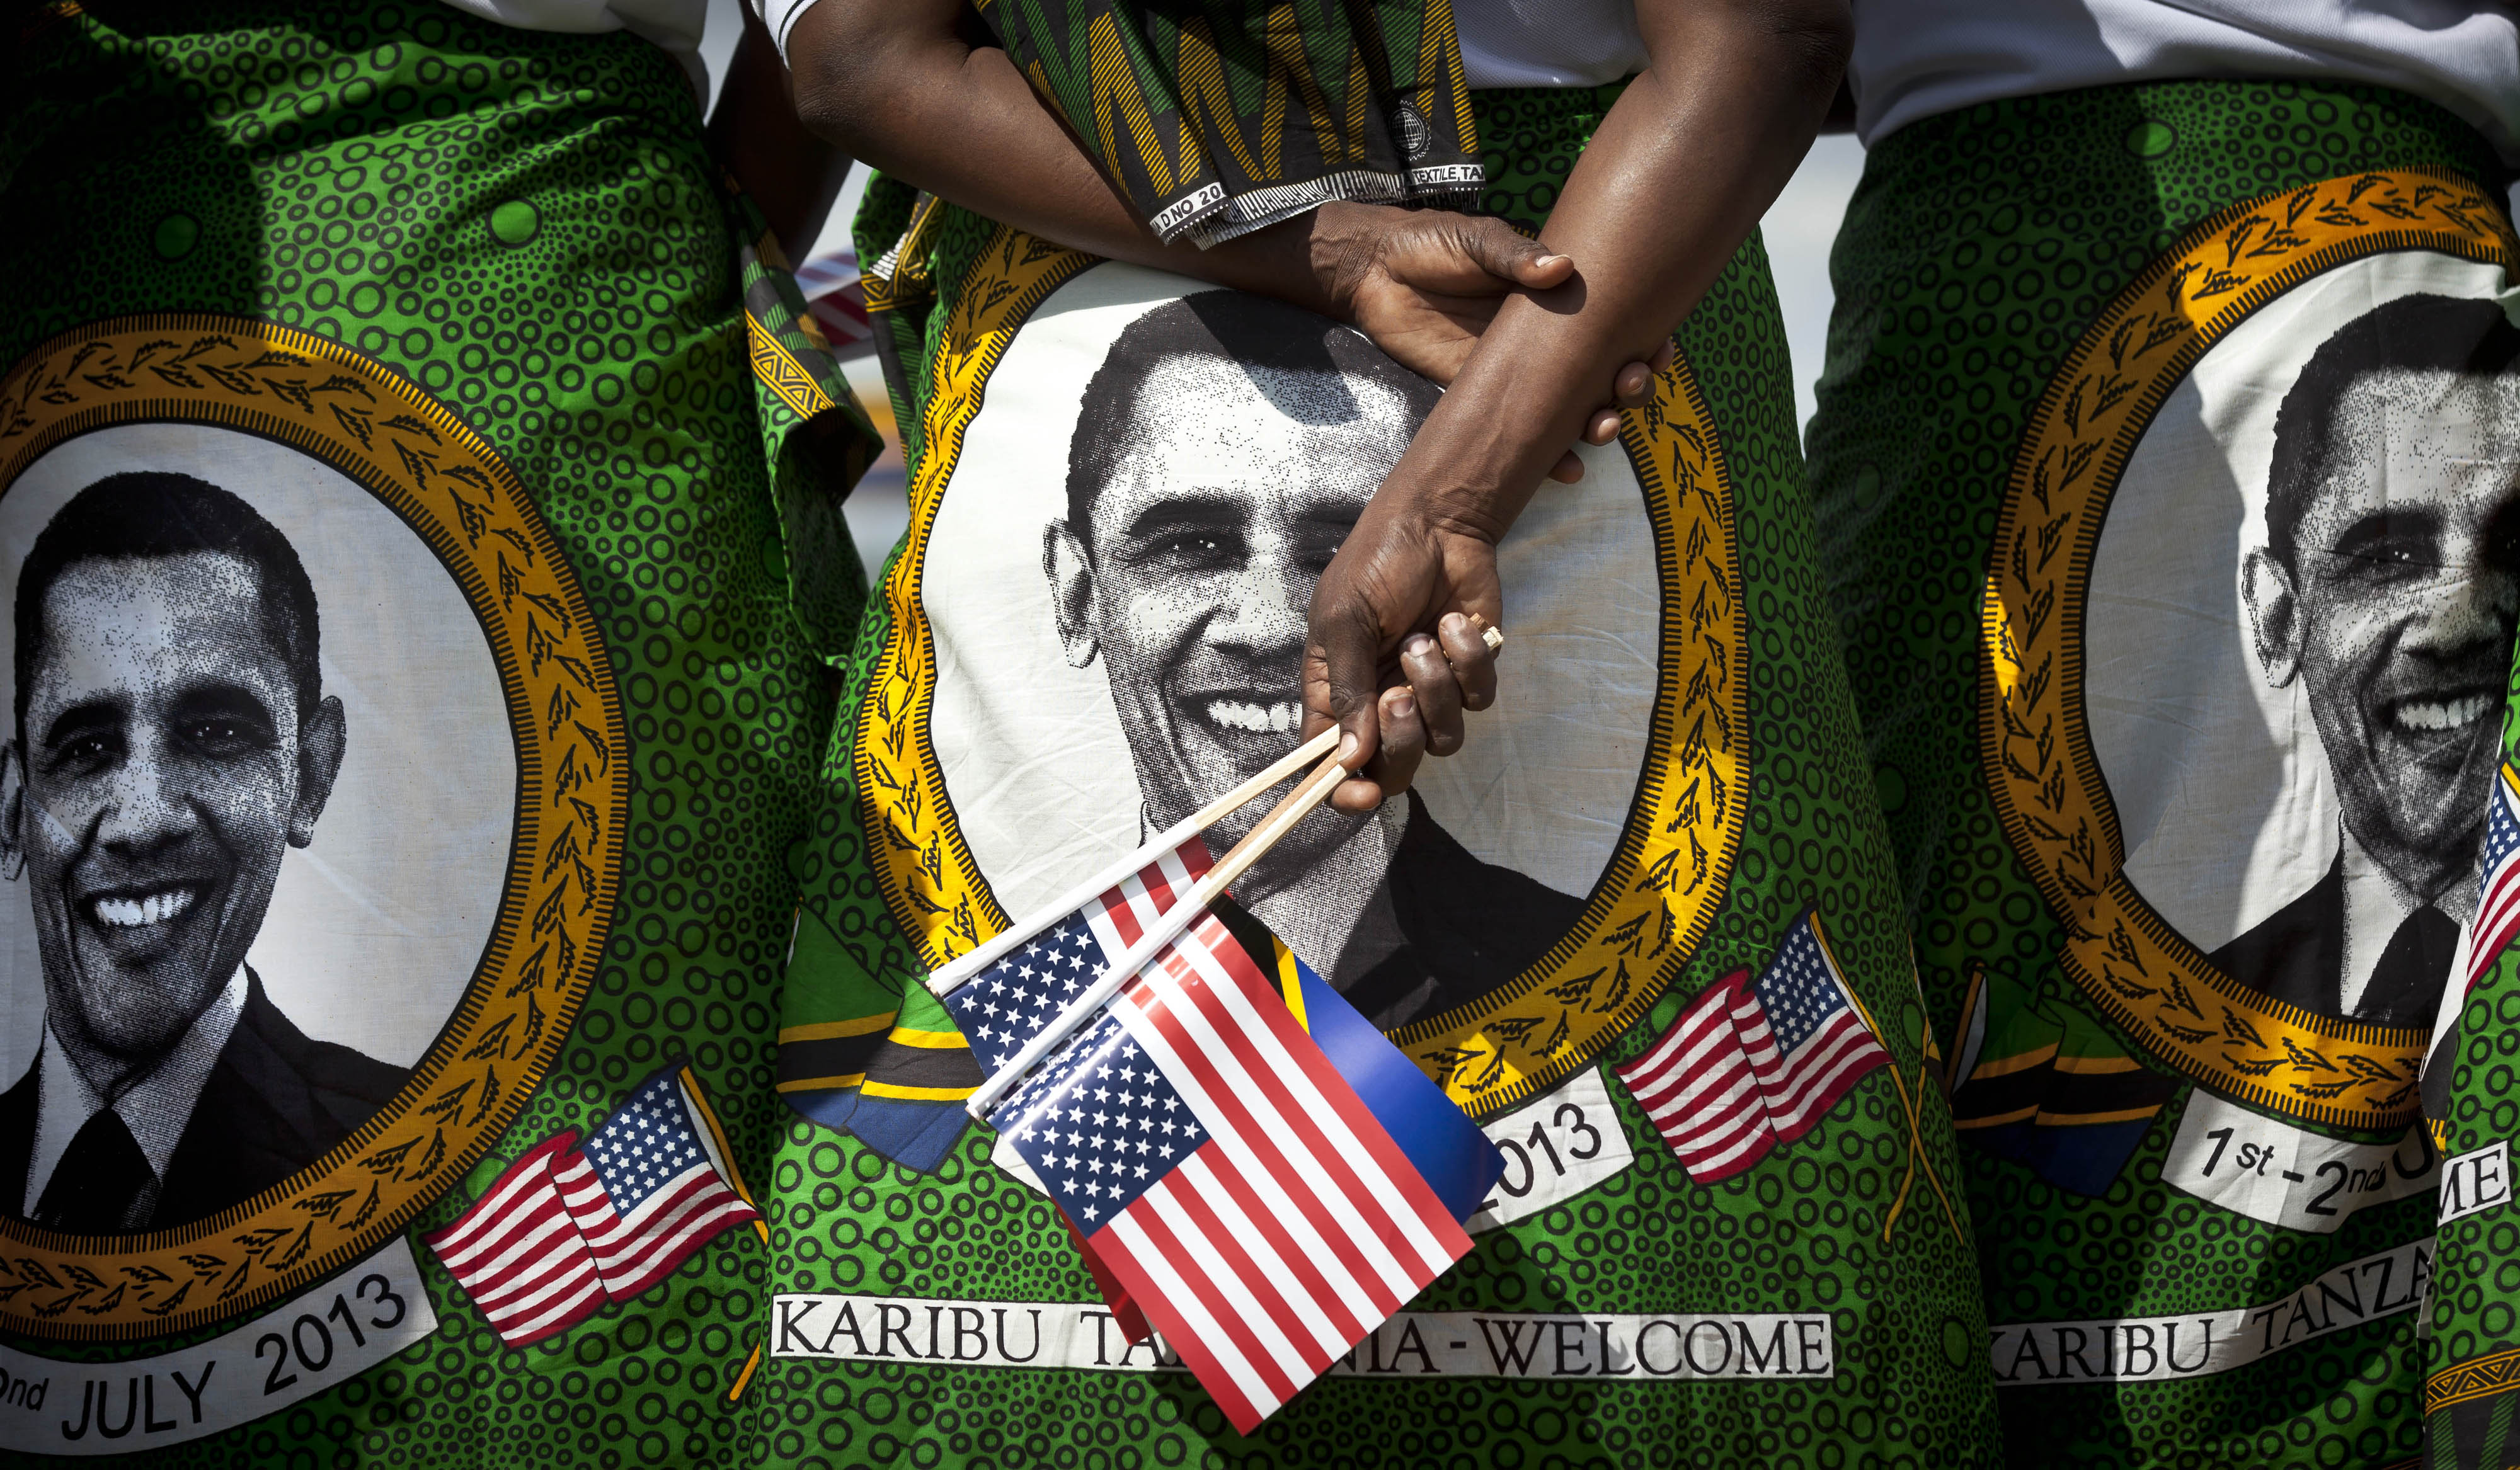 Women from a welcoming group wearing skirts and shawls with the face of  President Barack Obama at Julius Nyerere airport at the end of his weeklong visit to Africa in 2013, in Dar es Salaam, Tanzania.